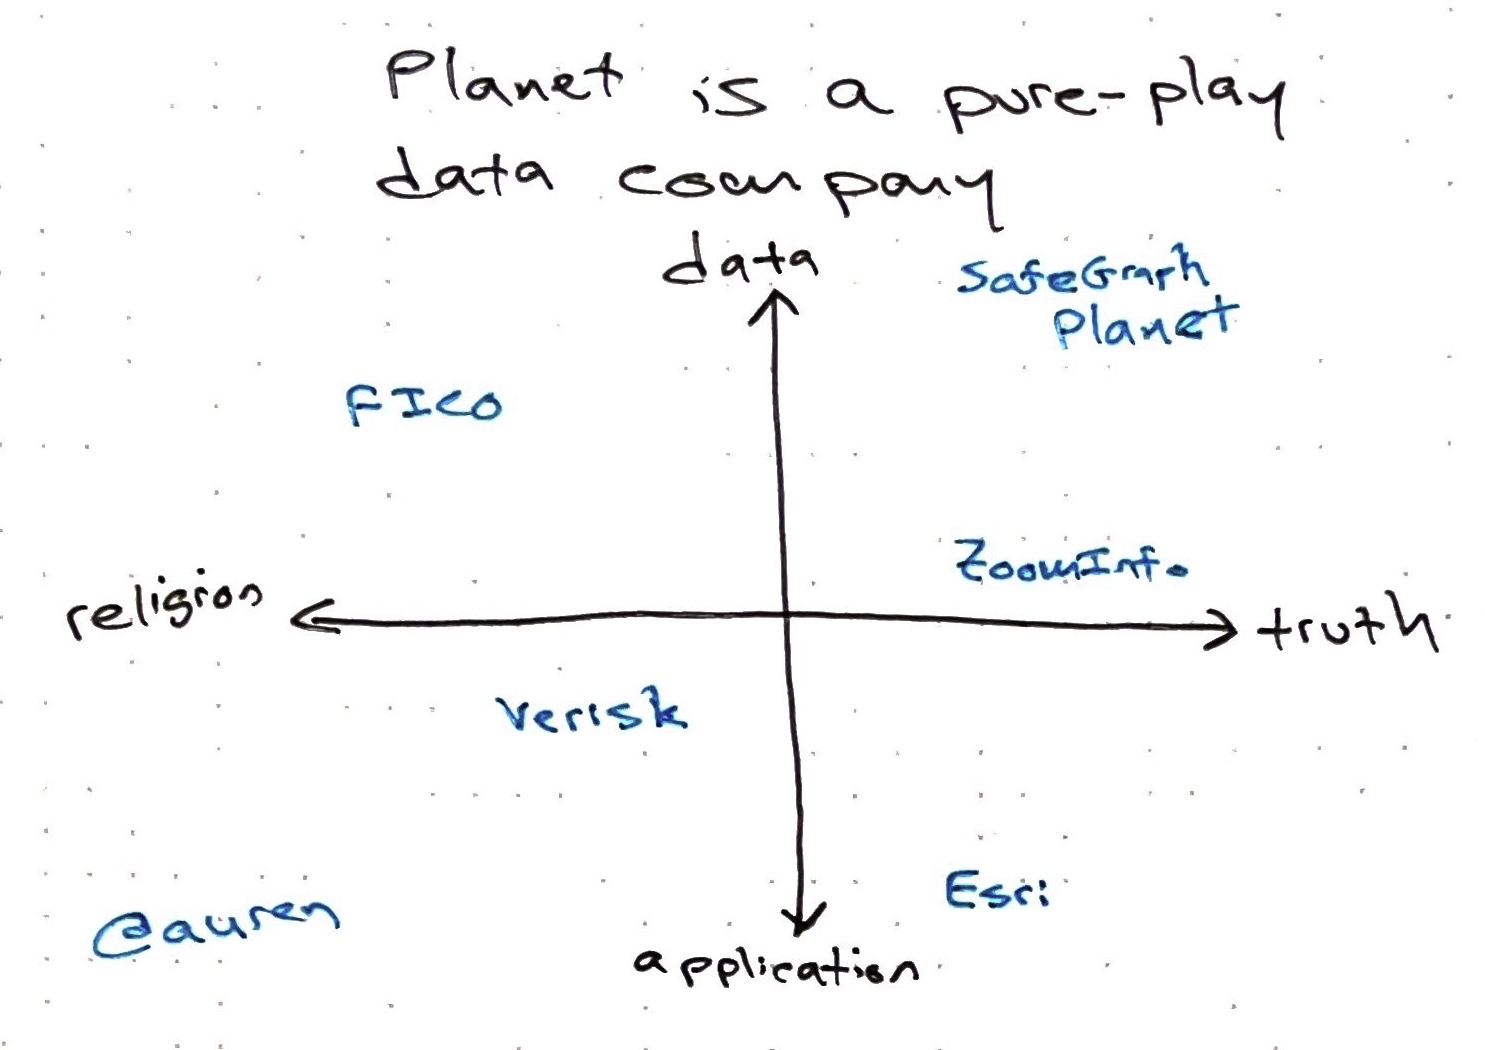 Building a Data Company in Space: World of DaaS interview with Planet CEO, Will Marshall